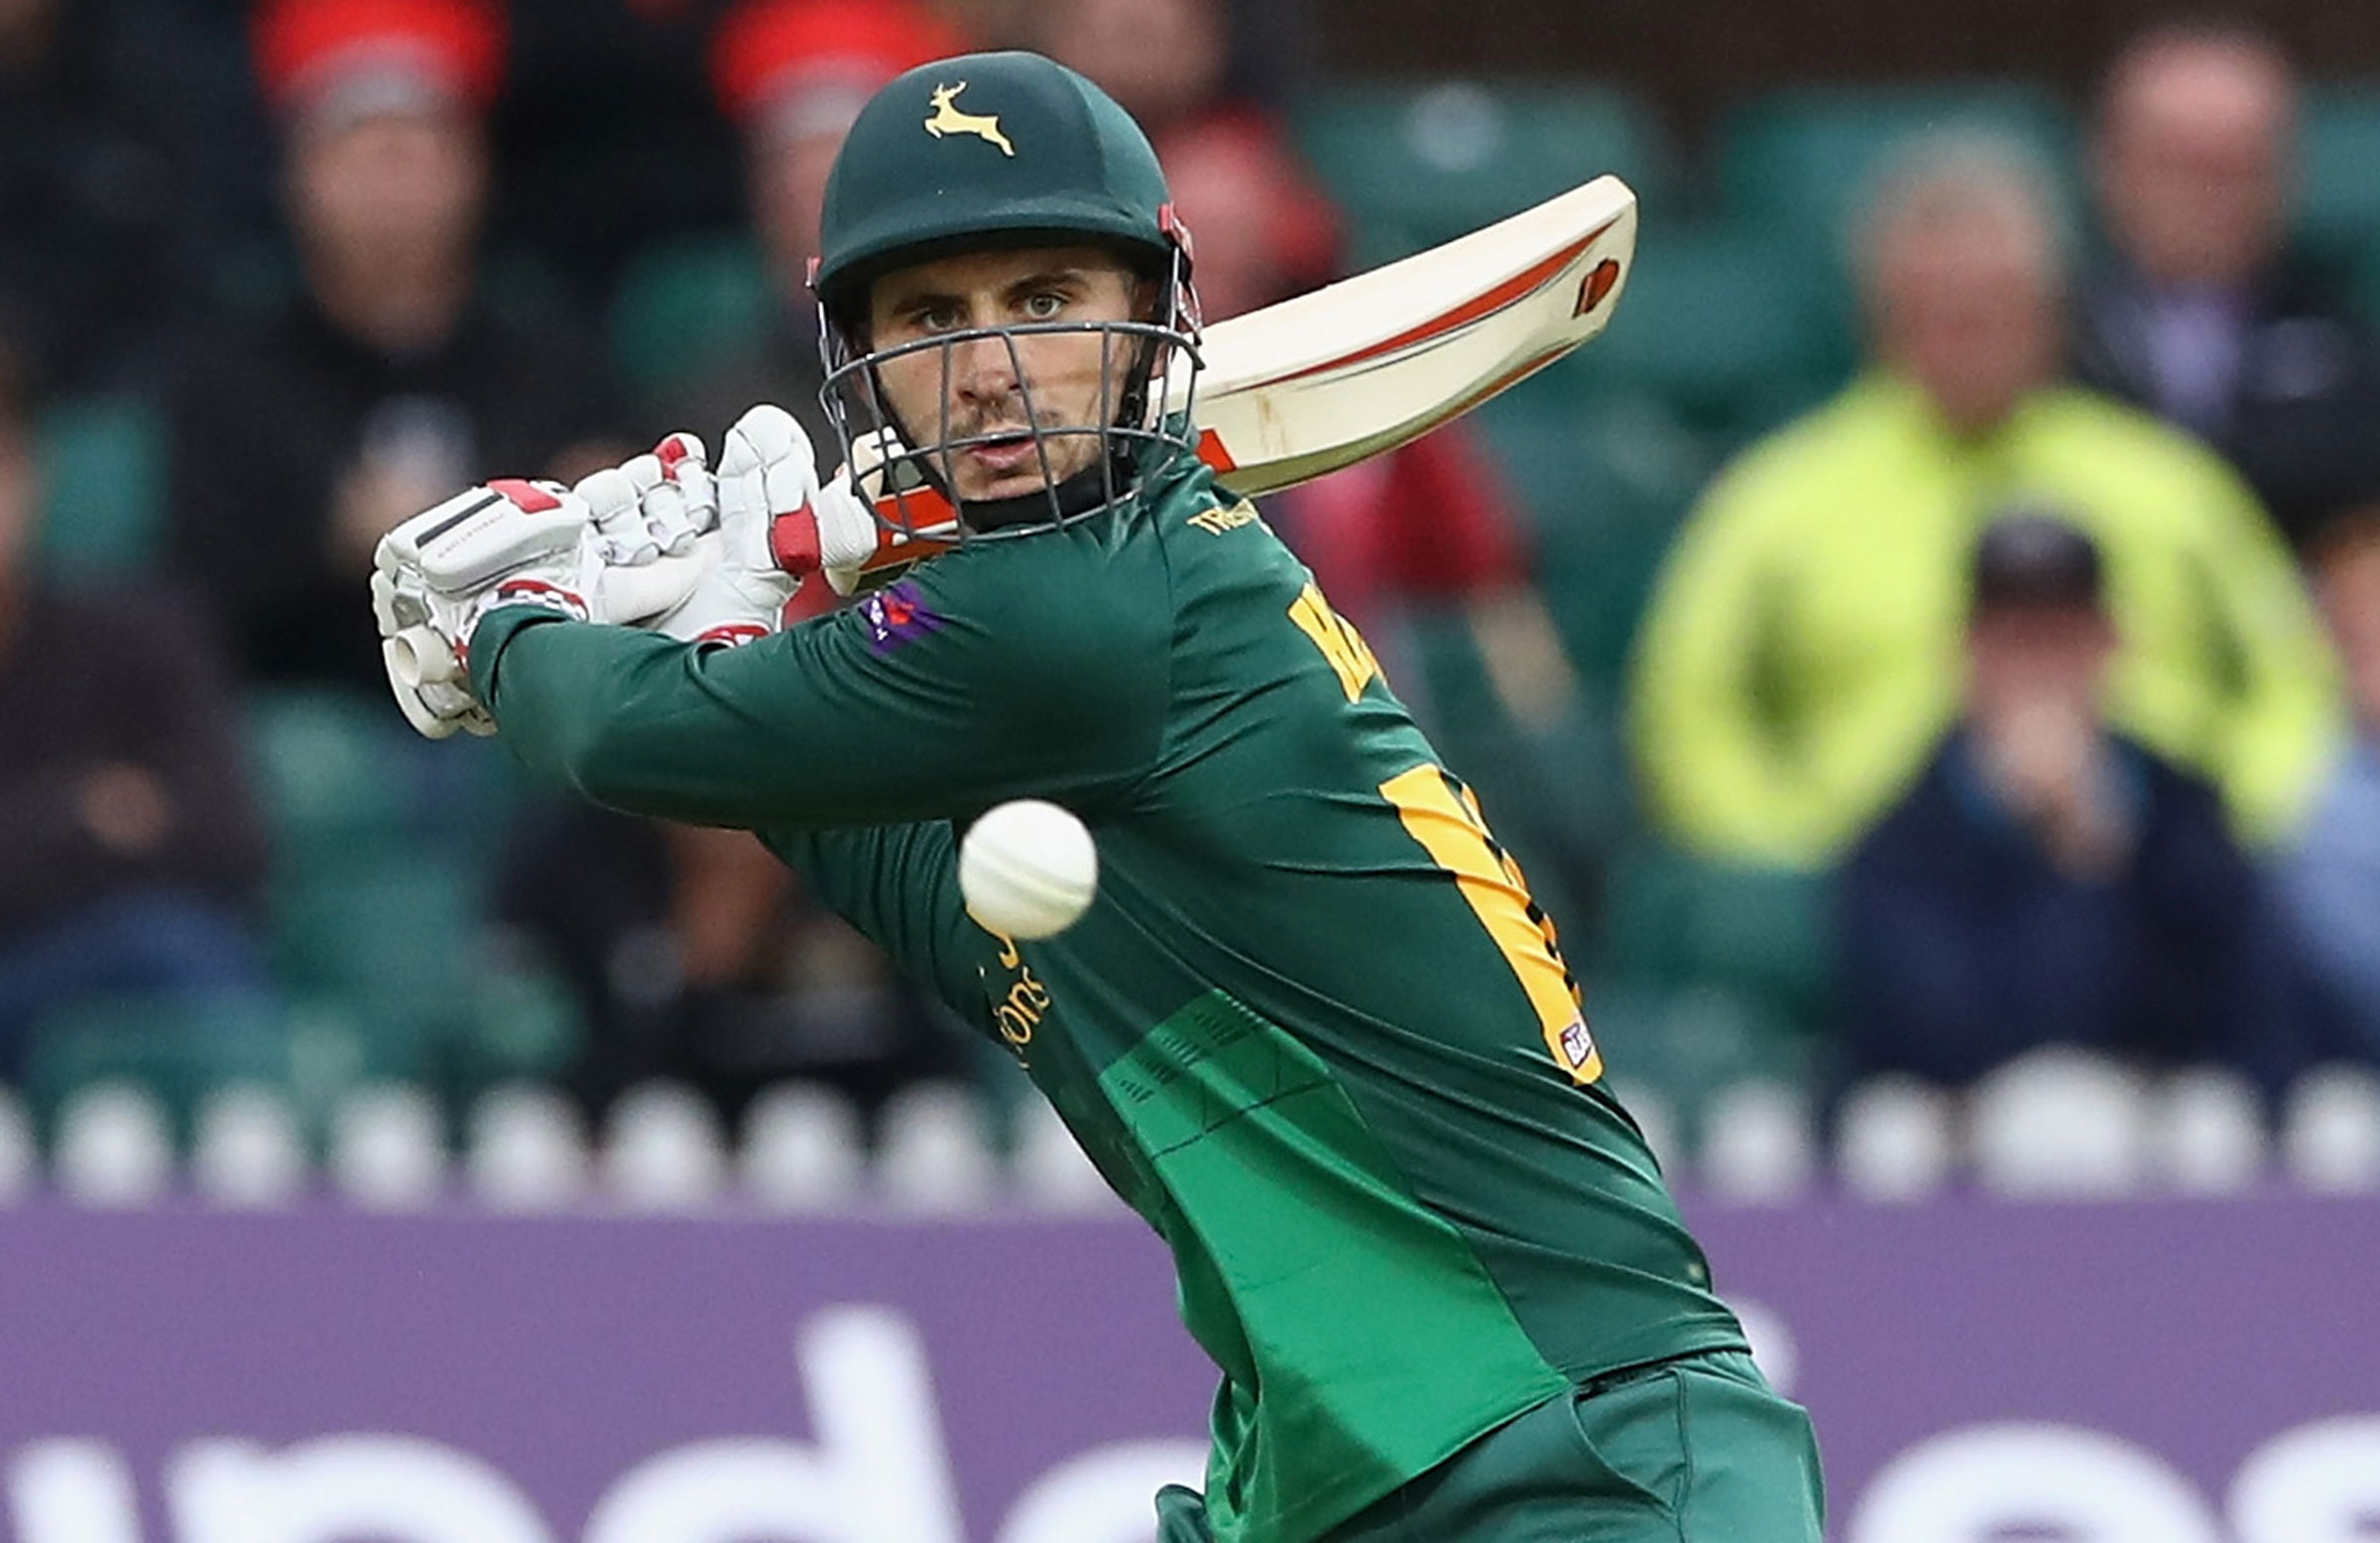 Hales destroys Durham in the NatWest T20 Blast